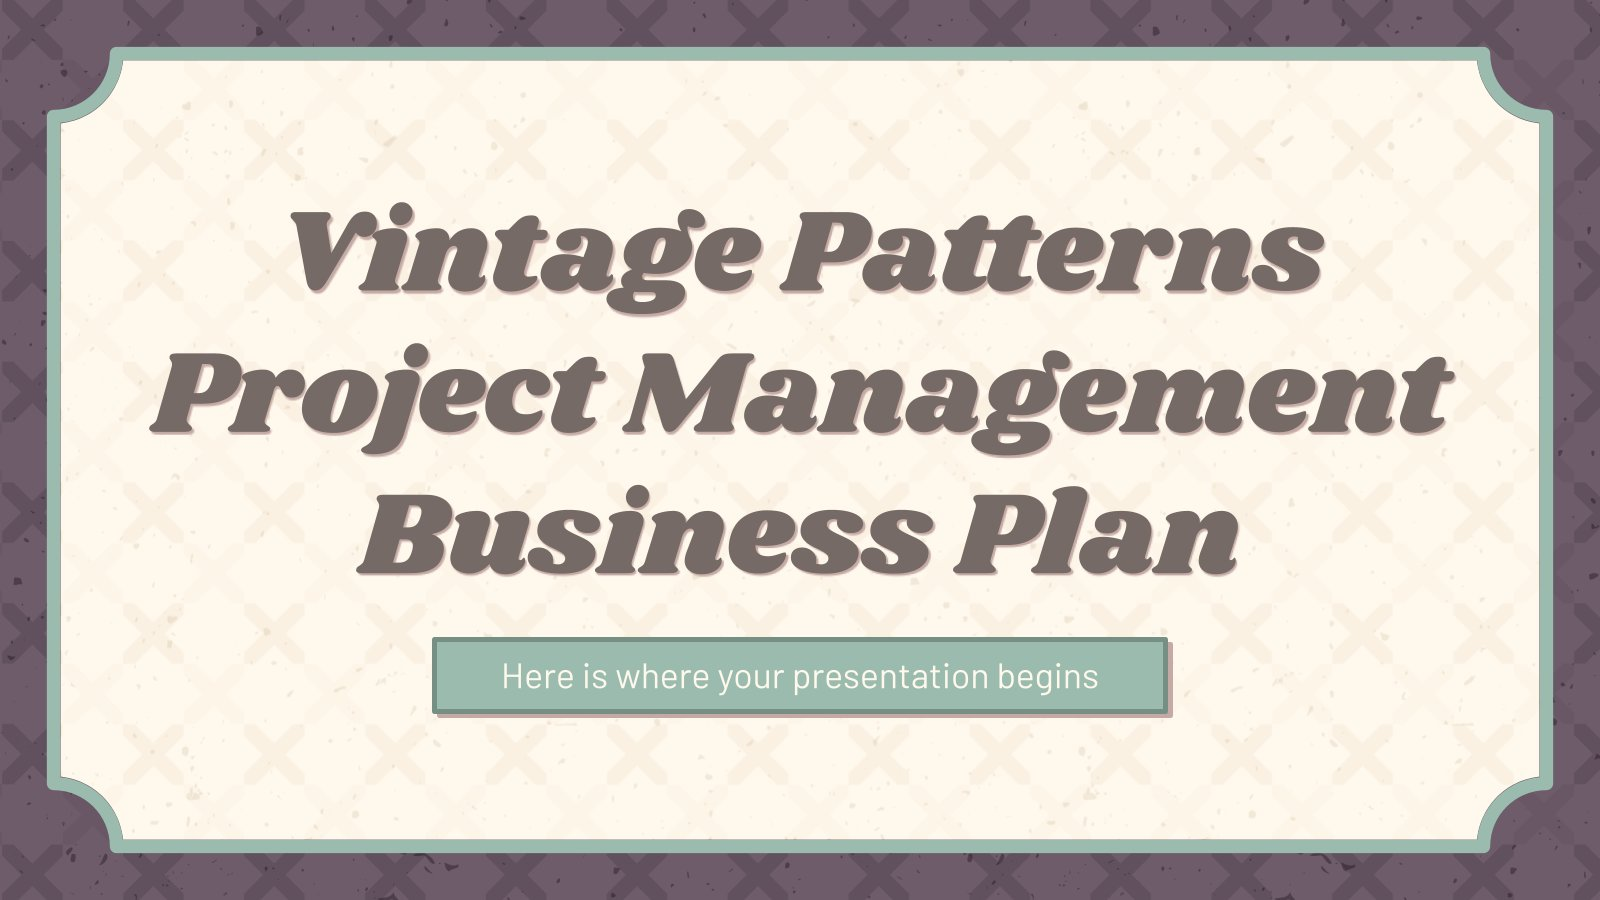 Vintage Patterns Project Management Business Plan presentation template